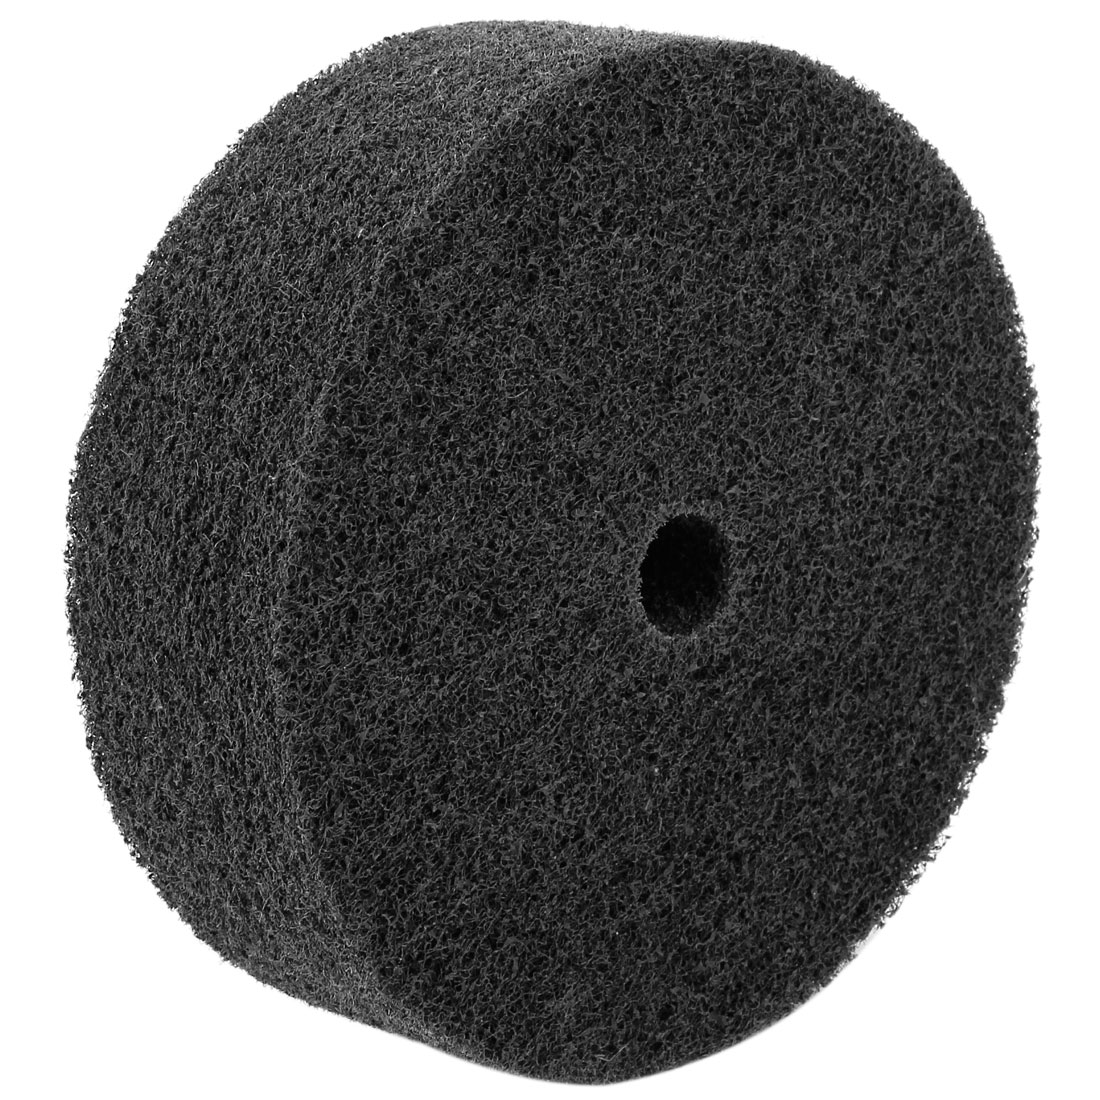 Nylon Fiber Cylindrical Grinding Wheel Black 155mmx18mmx50mm